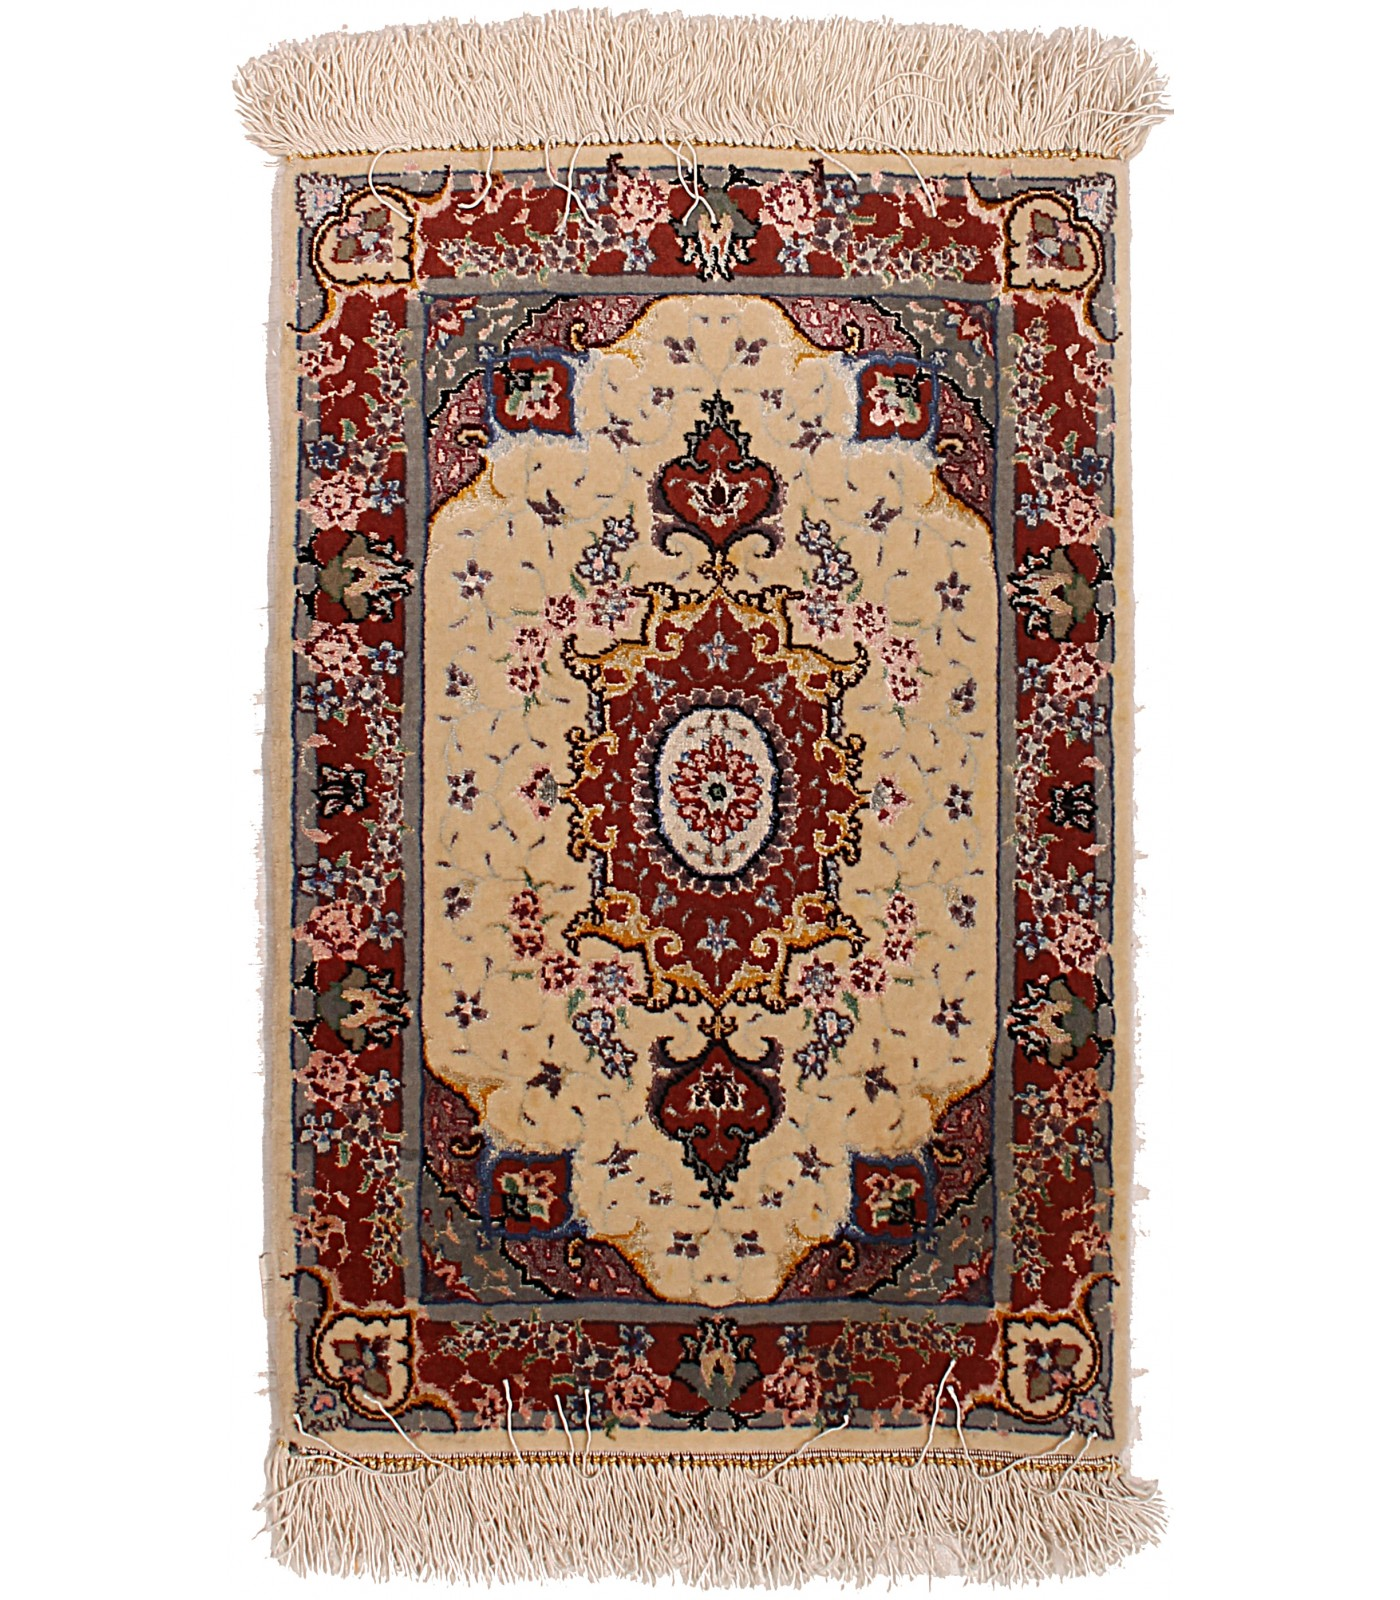 Rugs Online Sale 38690 Tabriz Persian Rugs For Sale In Nj Persian Rugs Online New